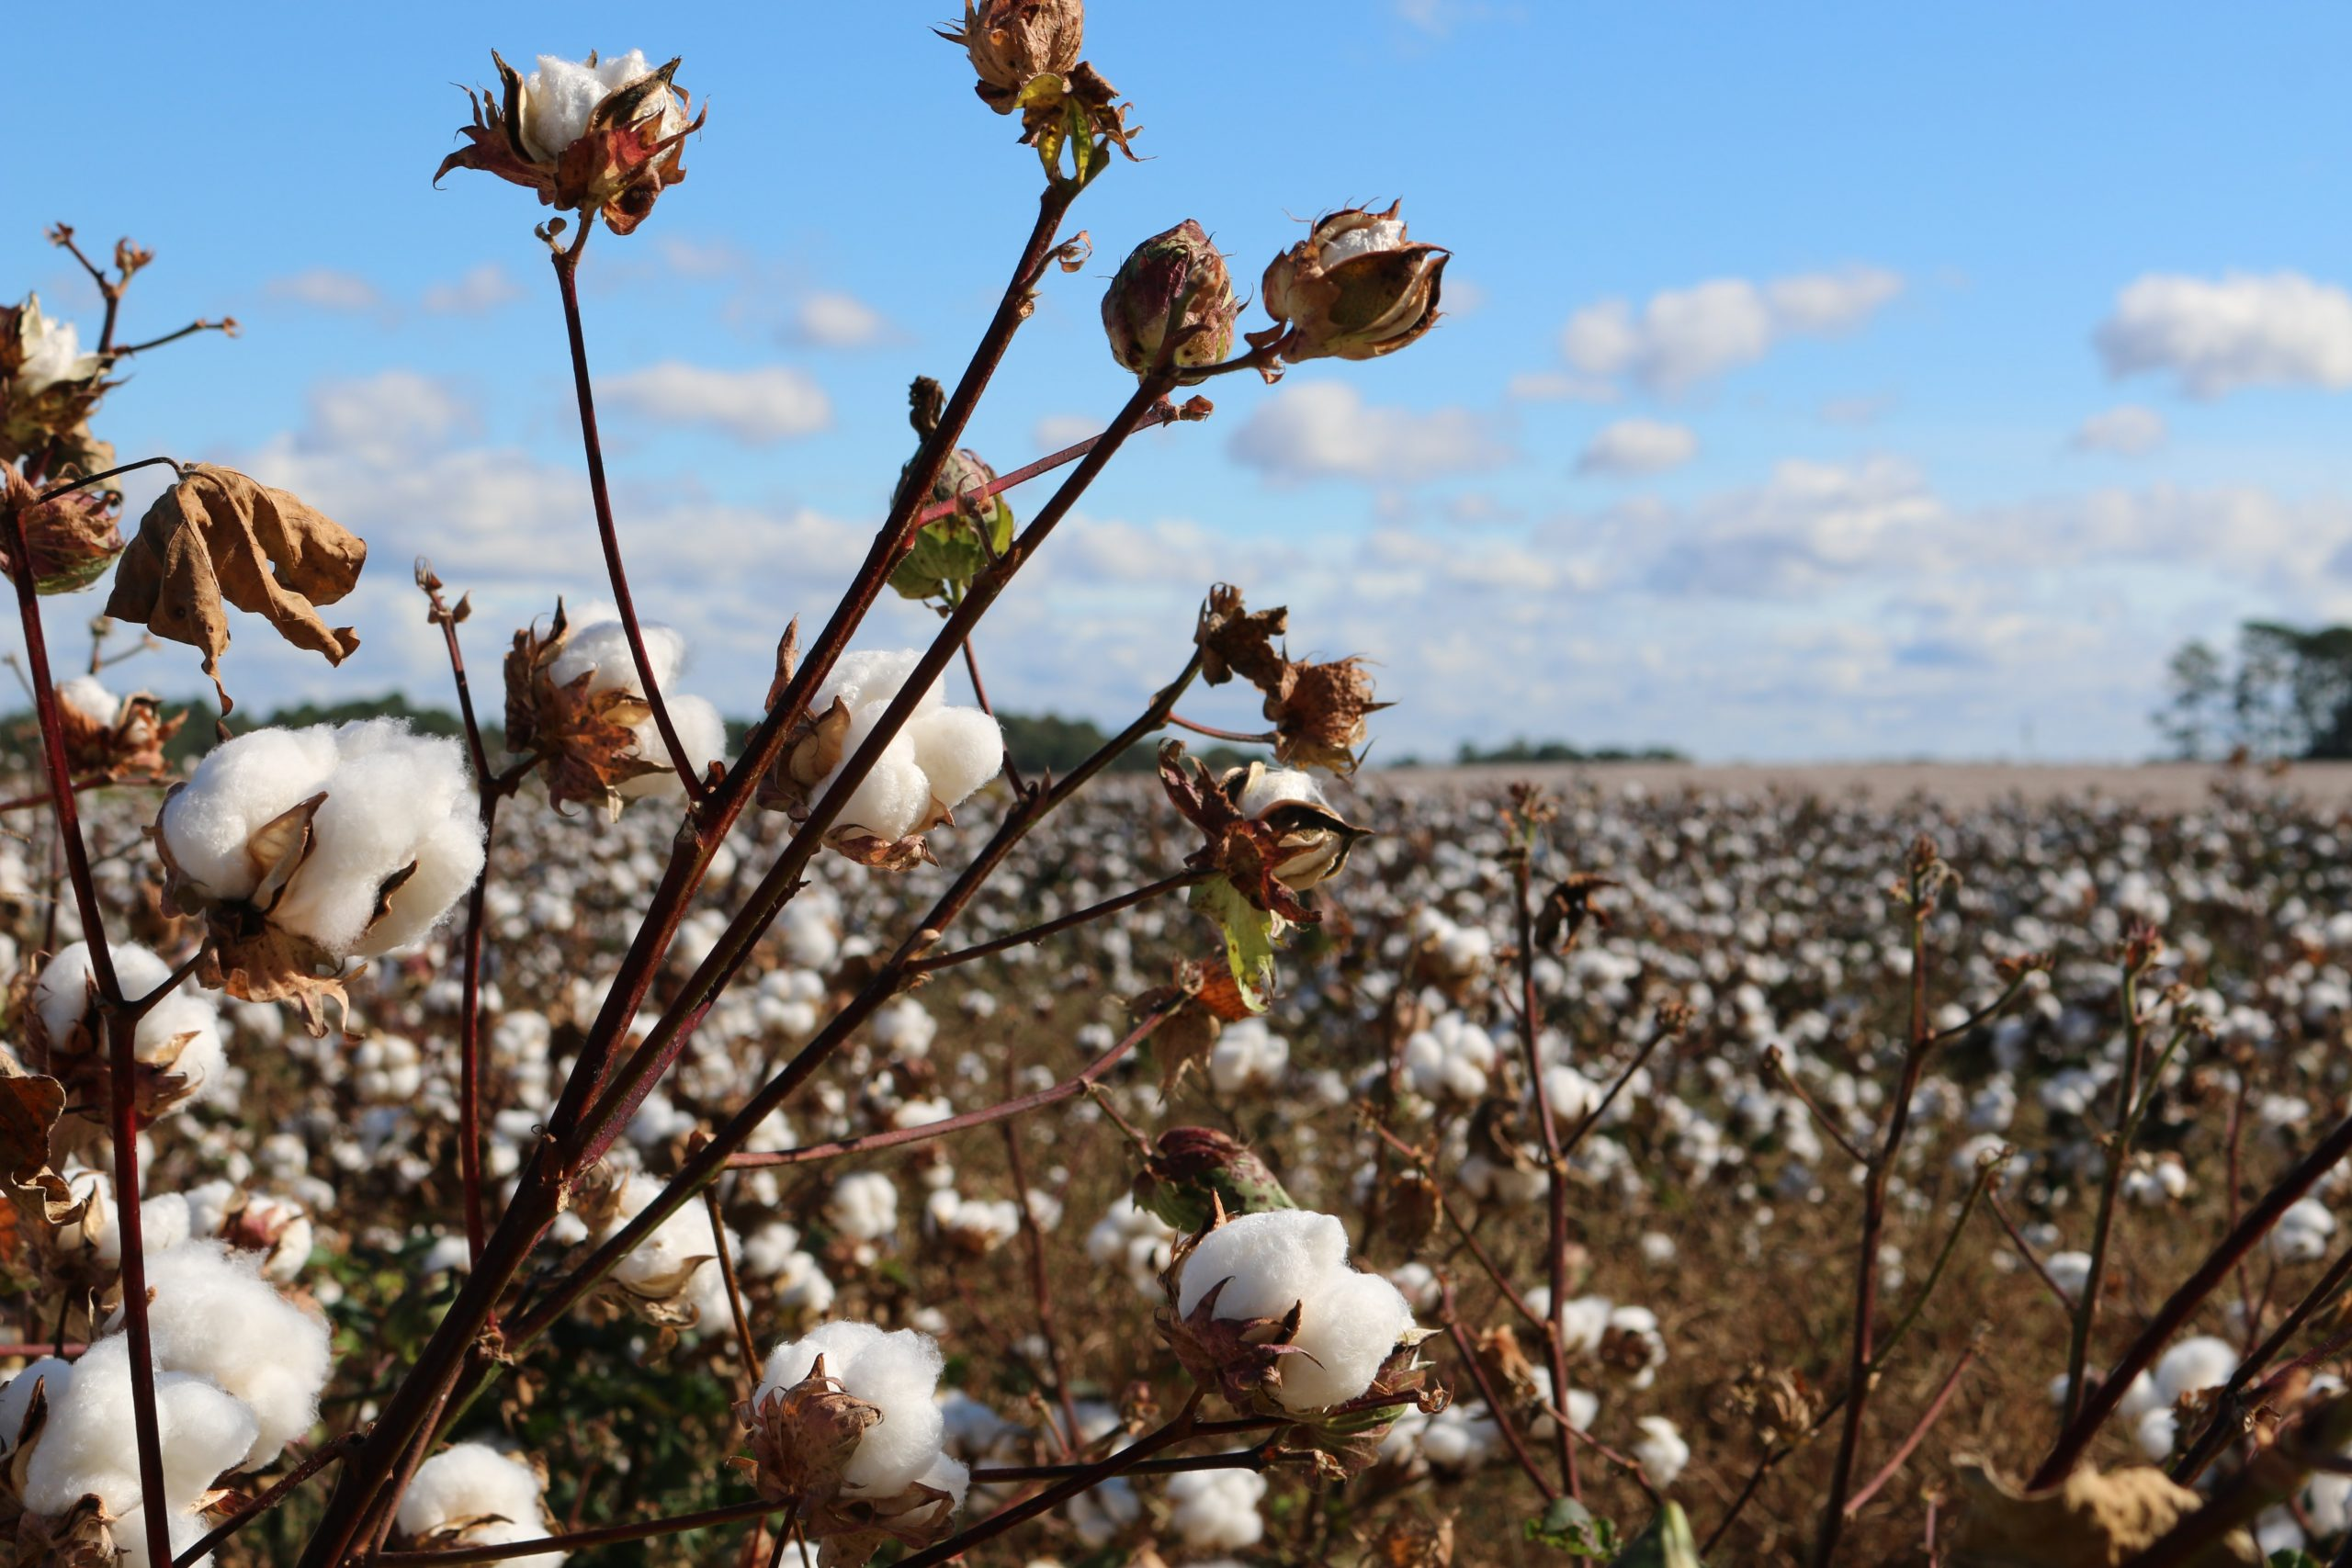 Forced labor in cotton supply chains ─ Key takeaways from our webinar